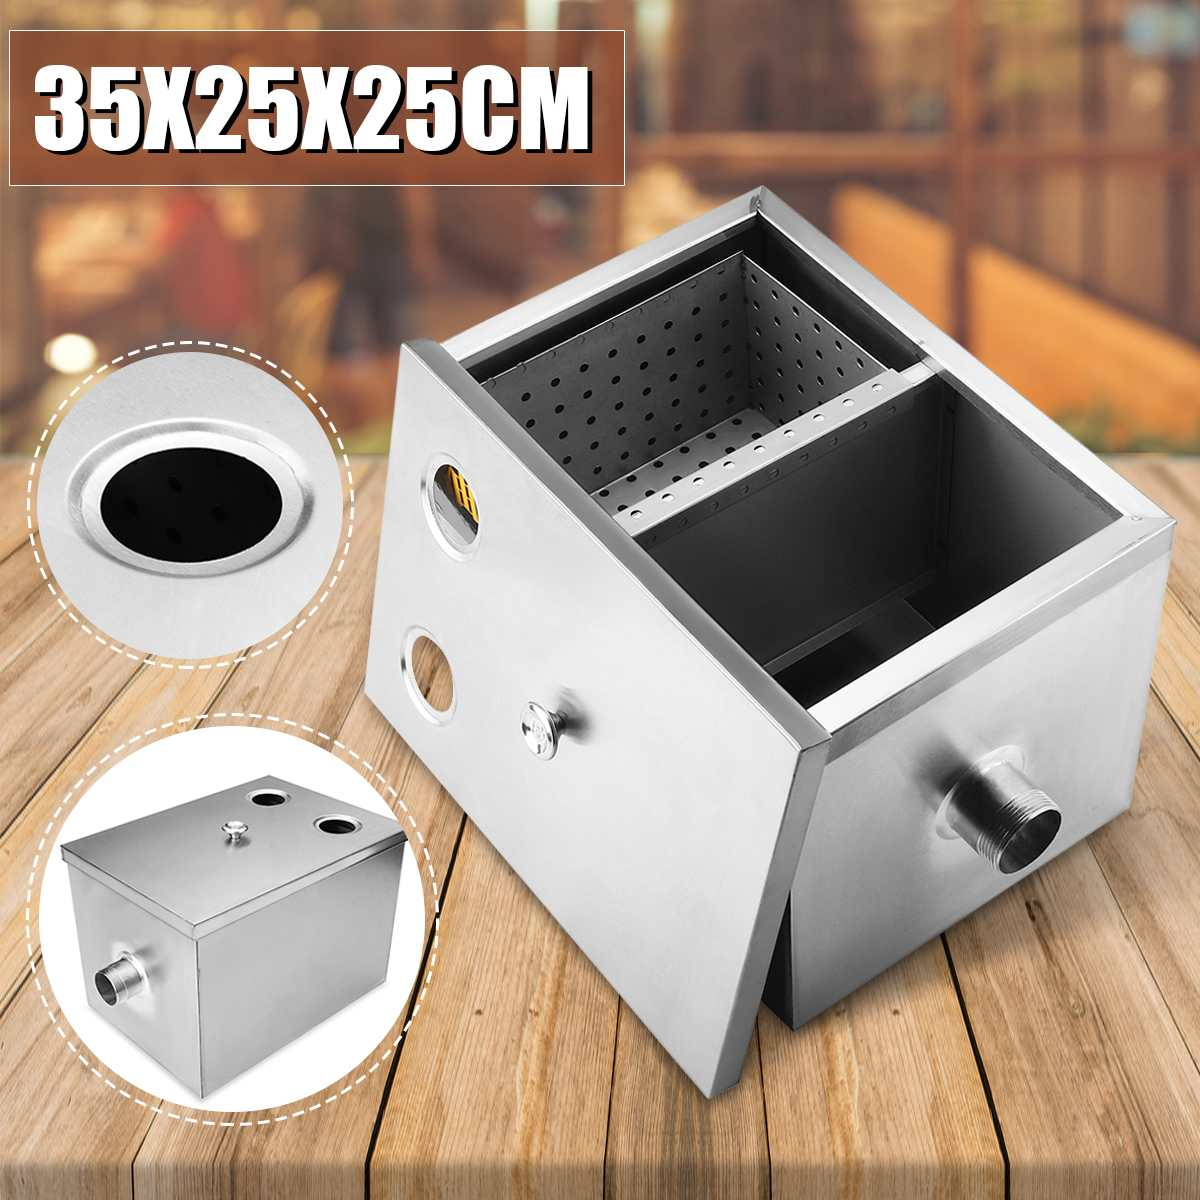 Grease Trap Interceptor Set Stainless Steel Detachable Design For Restaurant Kitchen Wastewater Removable Baffles 2 Sizes Simple